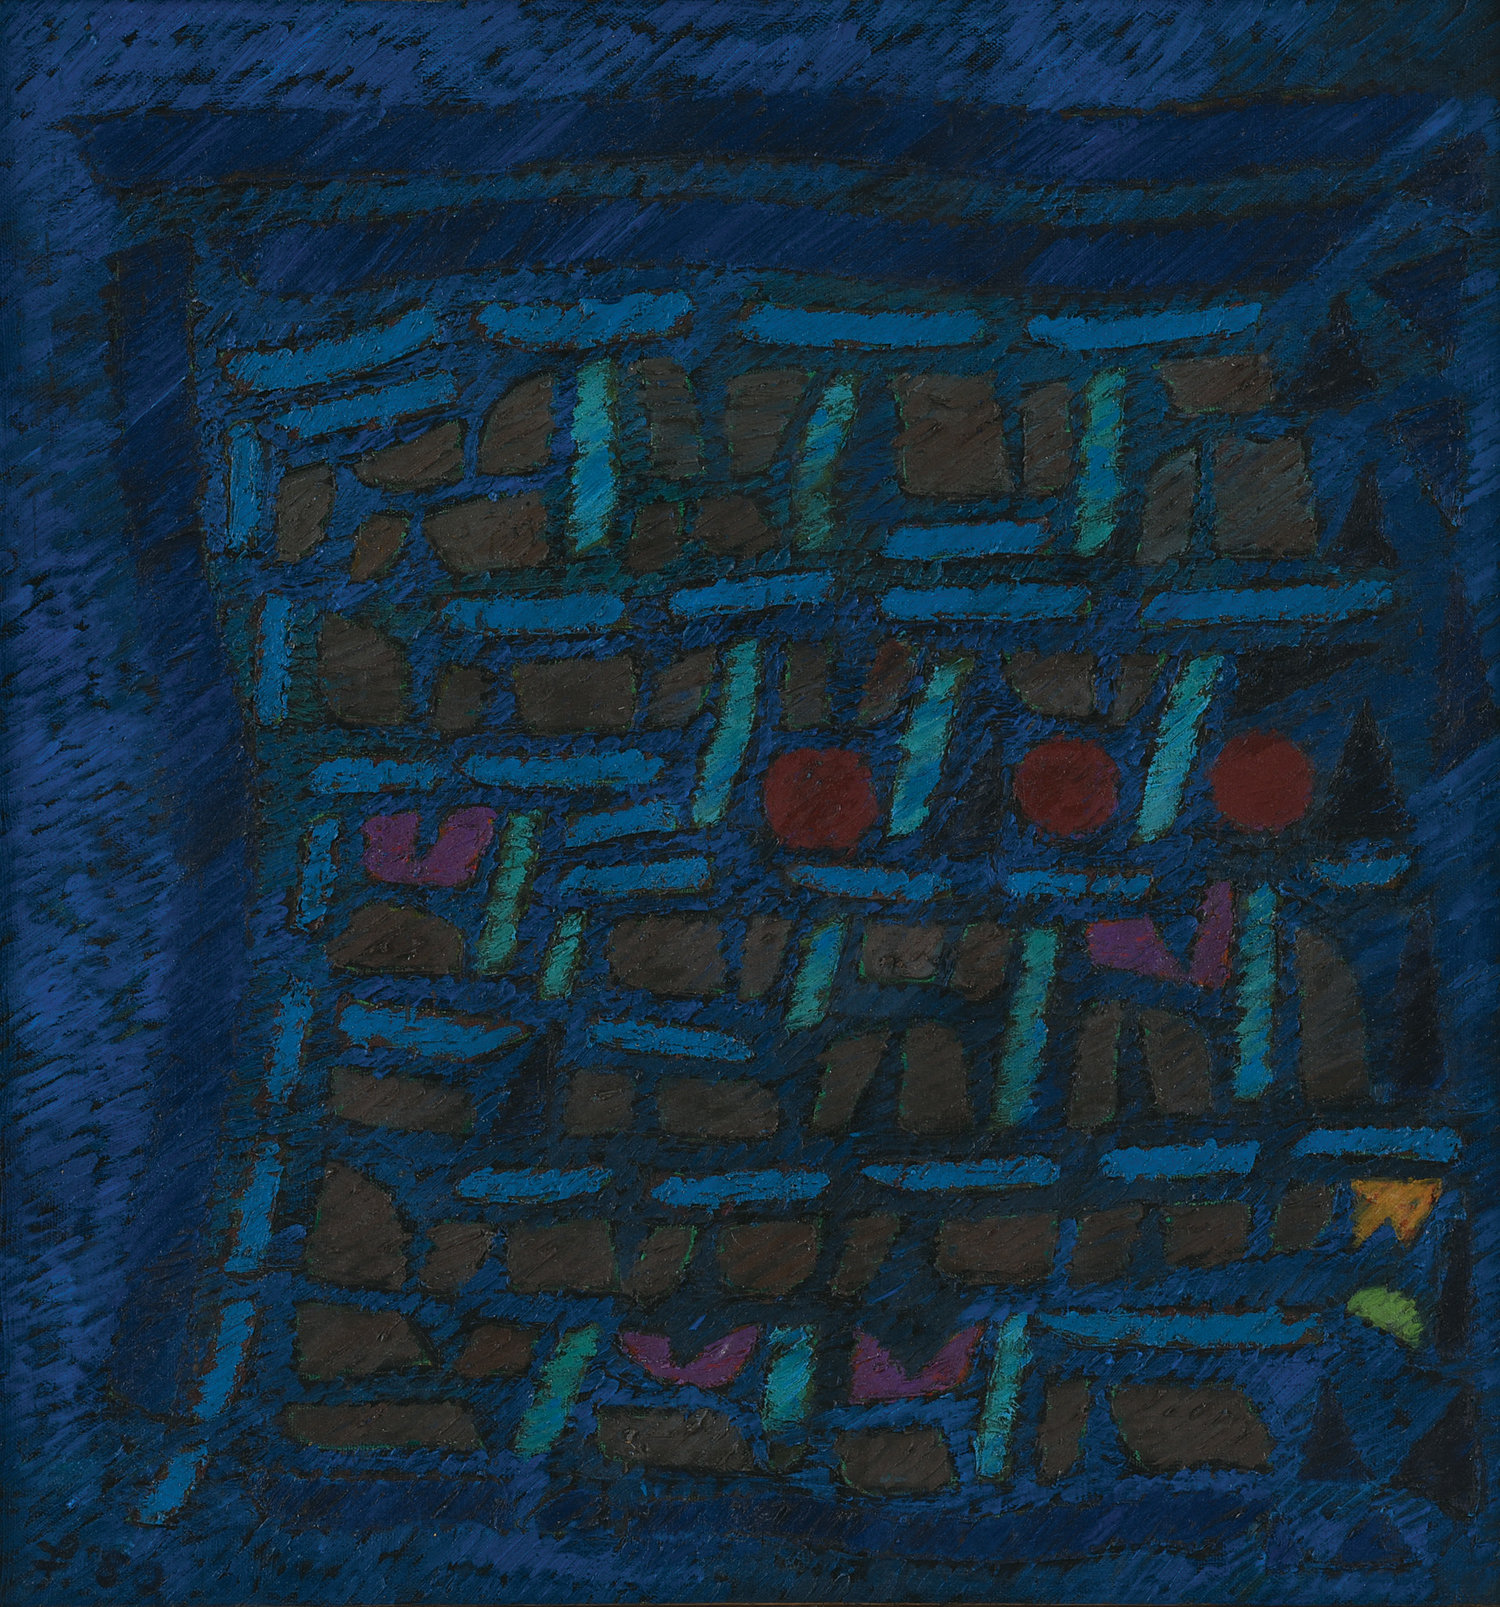 Fadjar Sidik, Space Dynamics Blue, oil on canvas, 69.5 x 65 cm, 1980